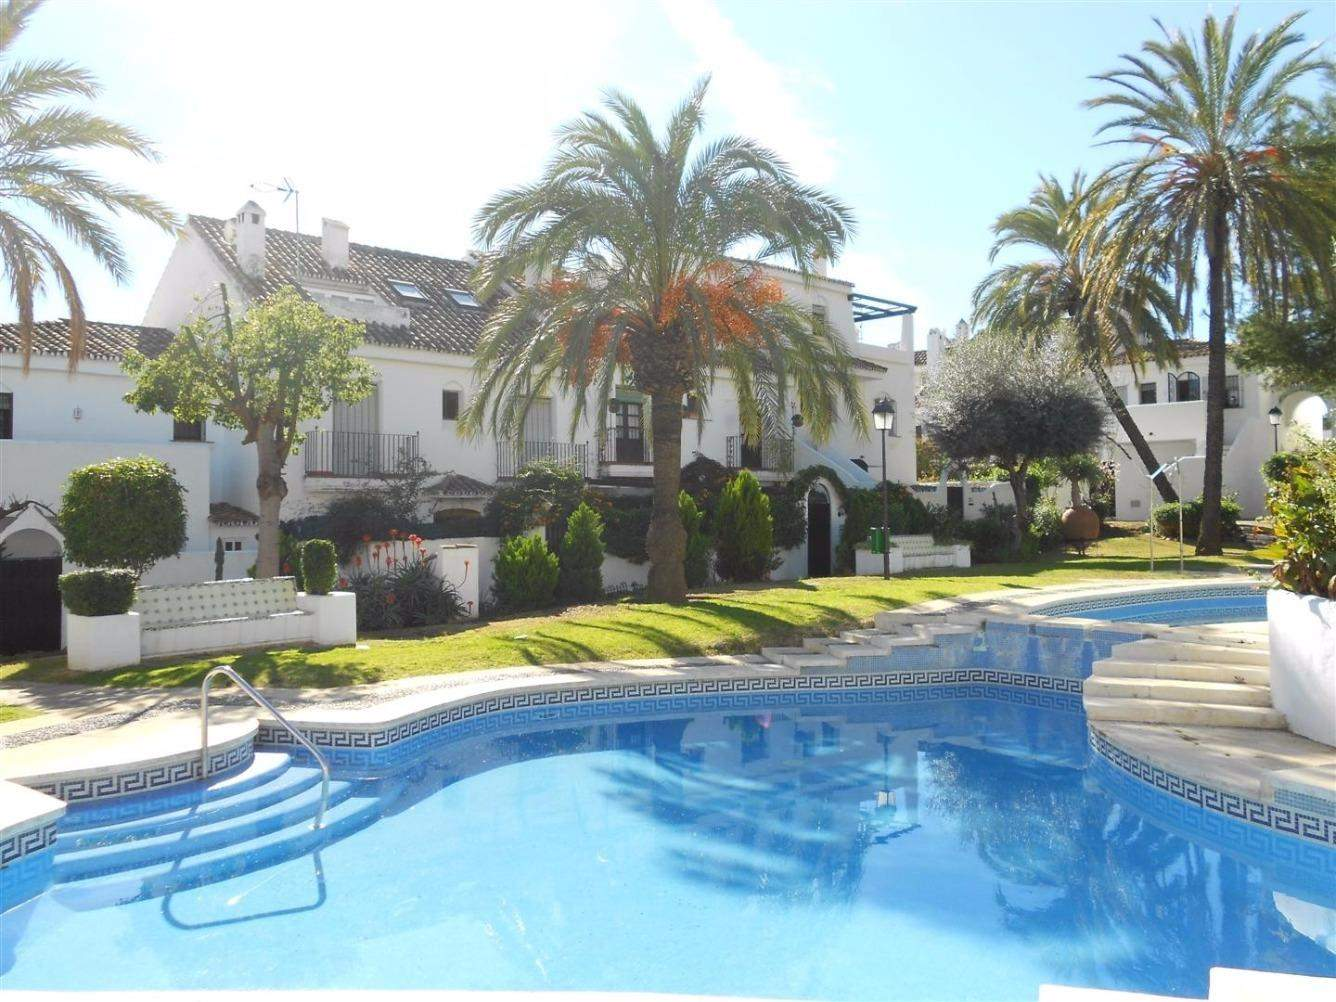 3 bedroom Terraced Villa for sale in Marbella with pool - € 259,000 (Ref: 3537127)